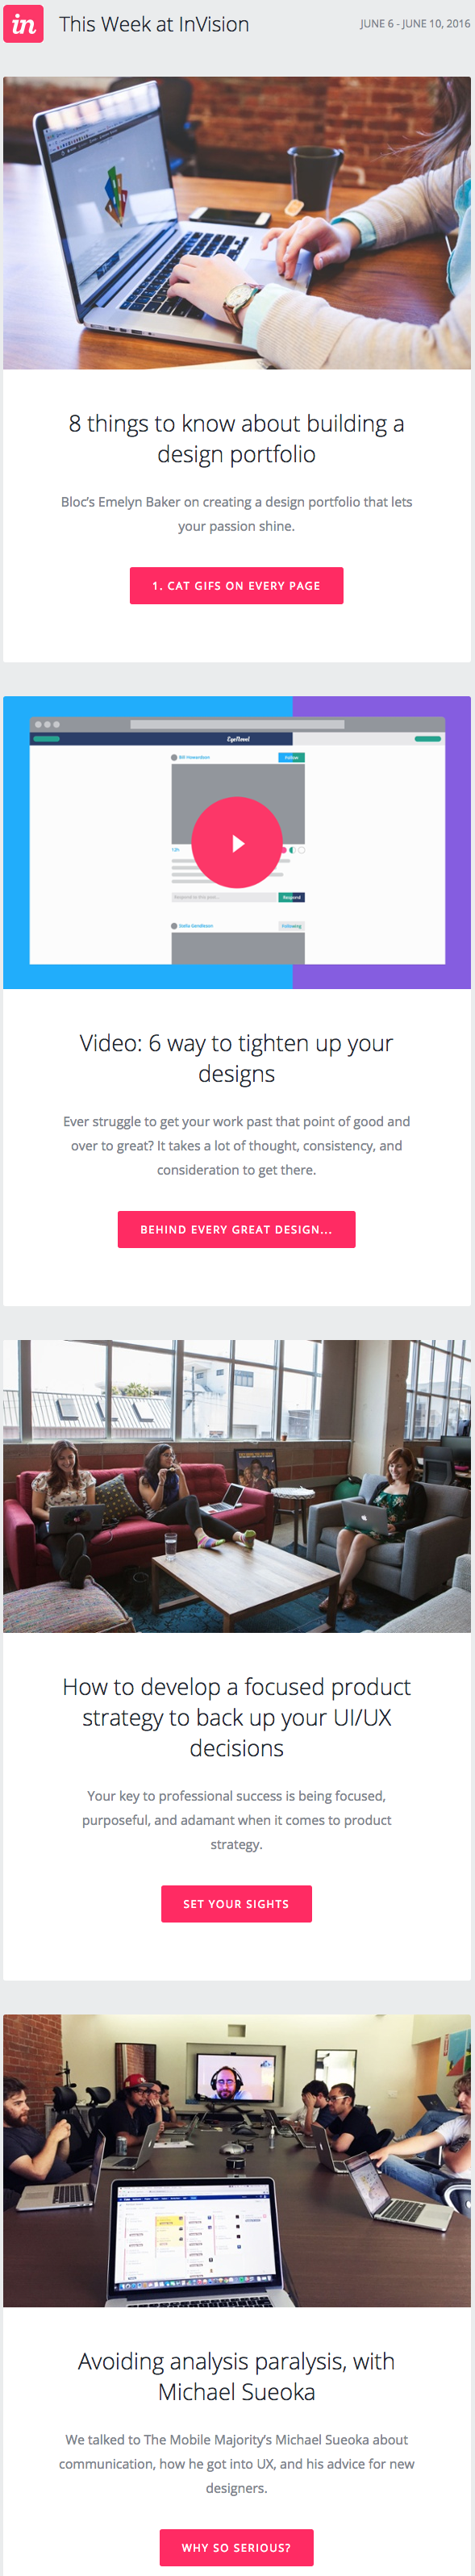 Email newsletter example design with blog posts by InVision